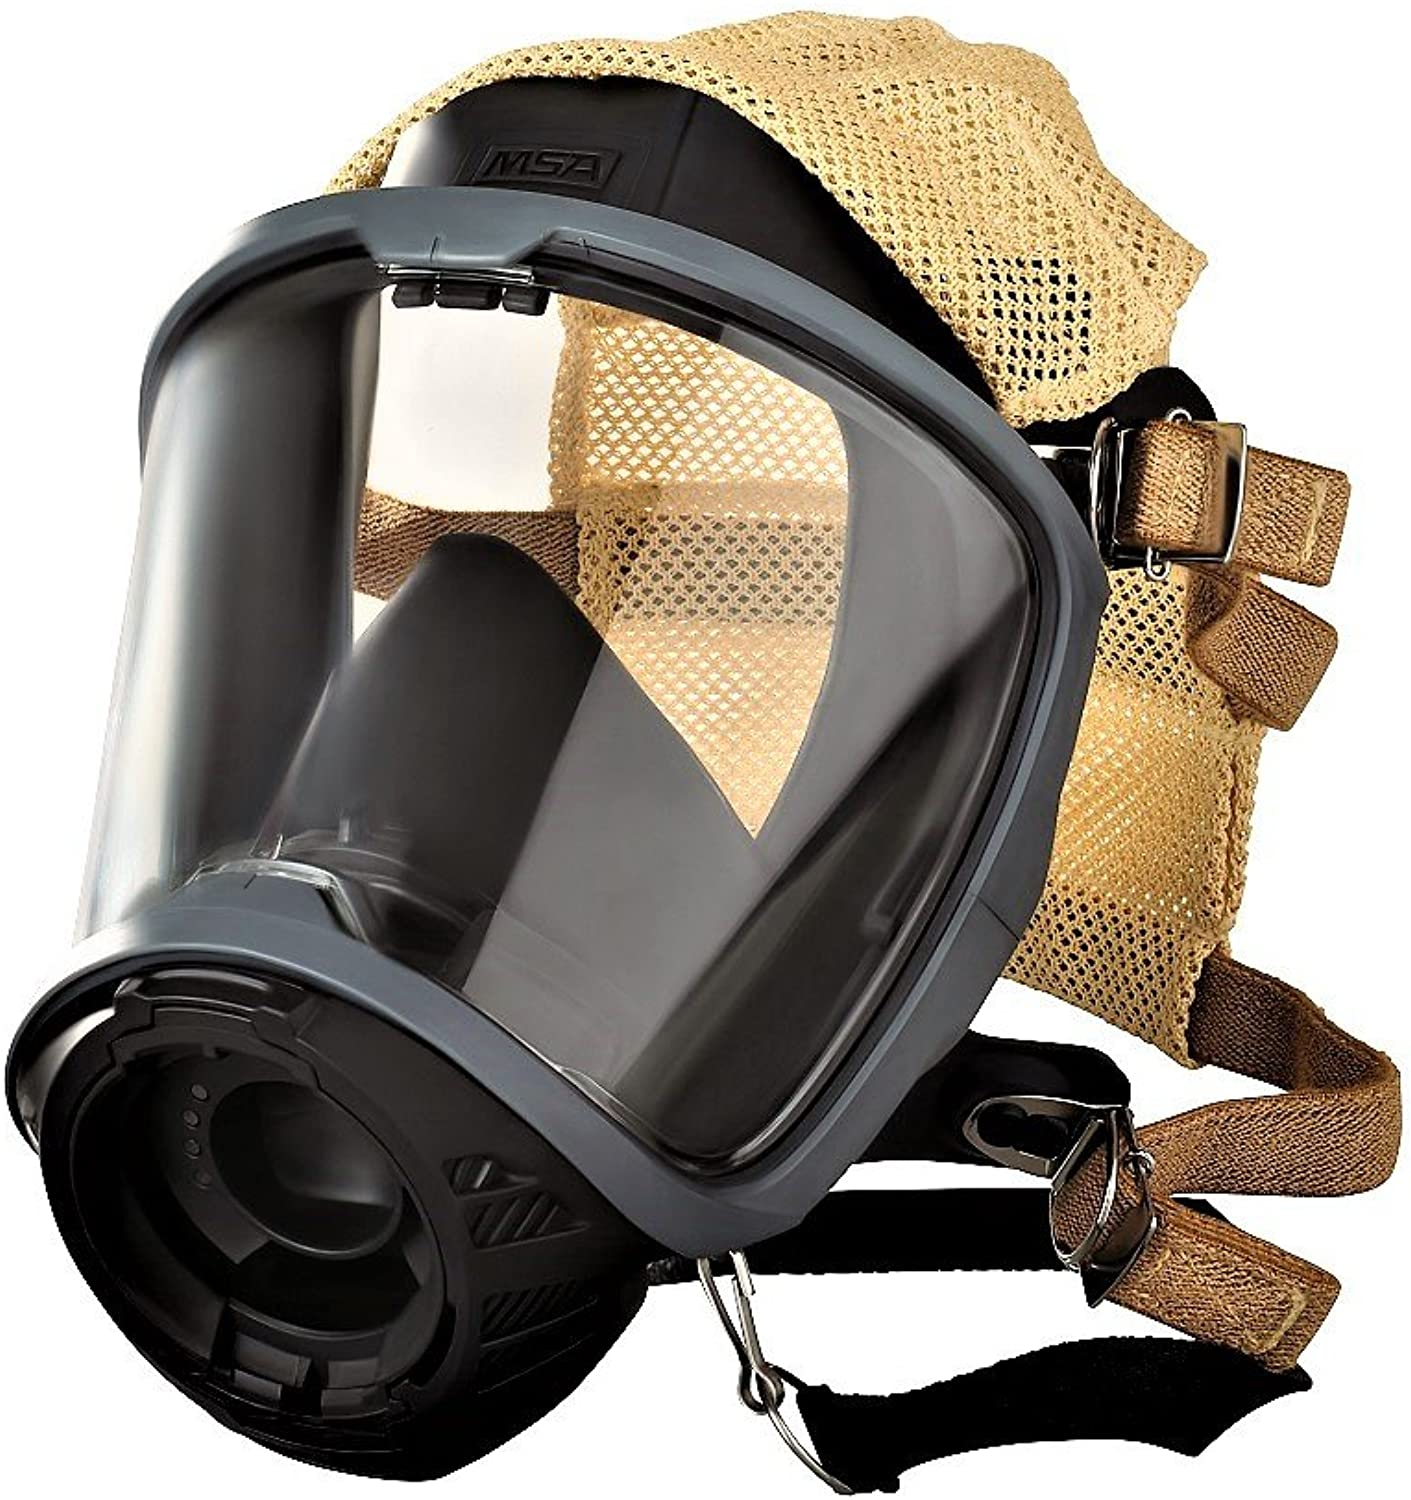 MSA Safety 10156459 Facepiece, G1, Fire Service, Nose Cup with 4 Point Adjustable Head Harness, Medium